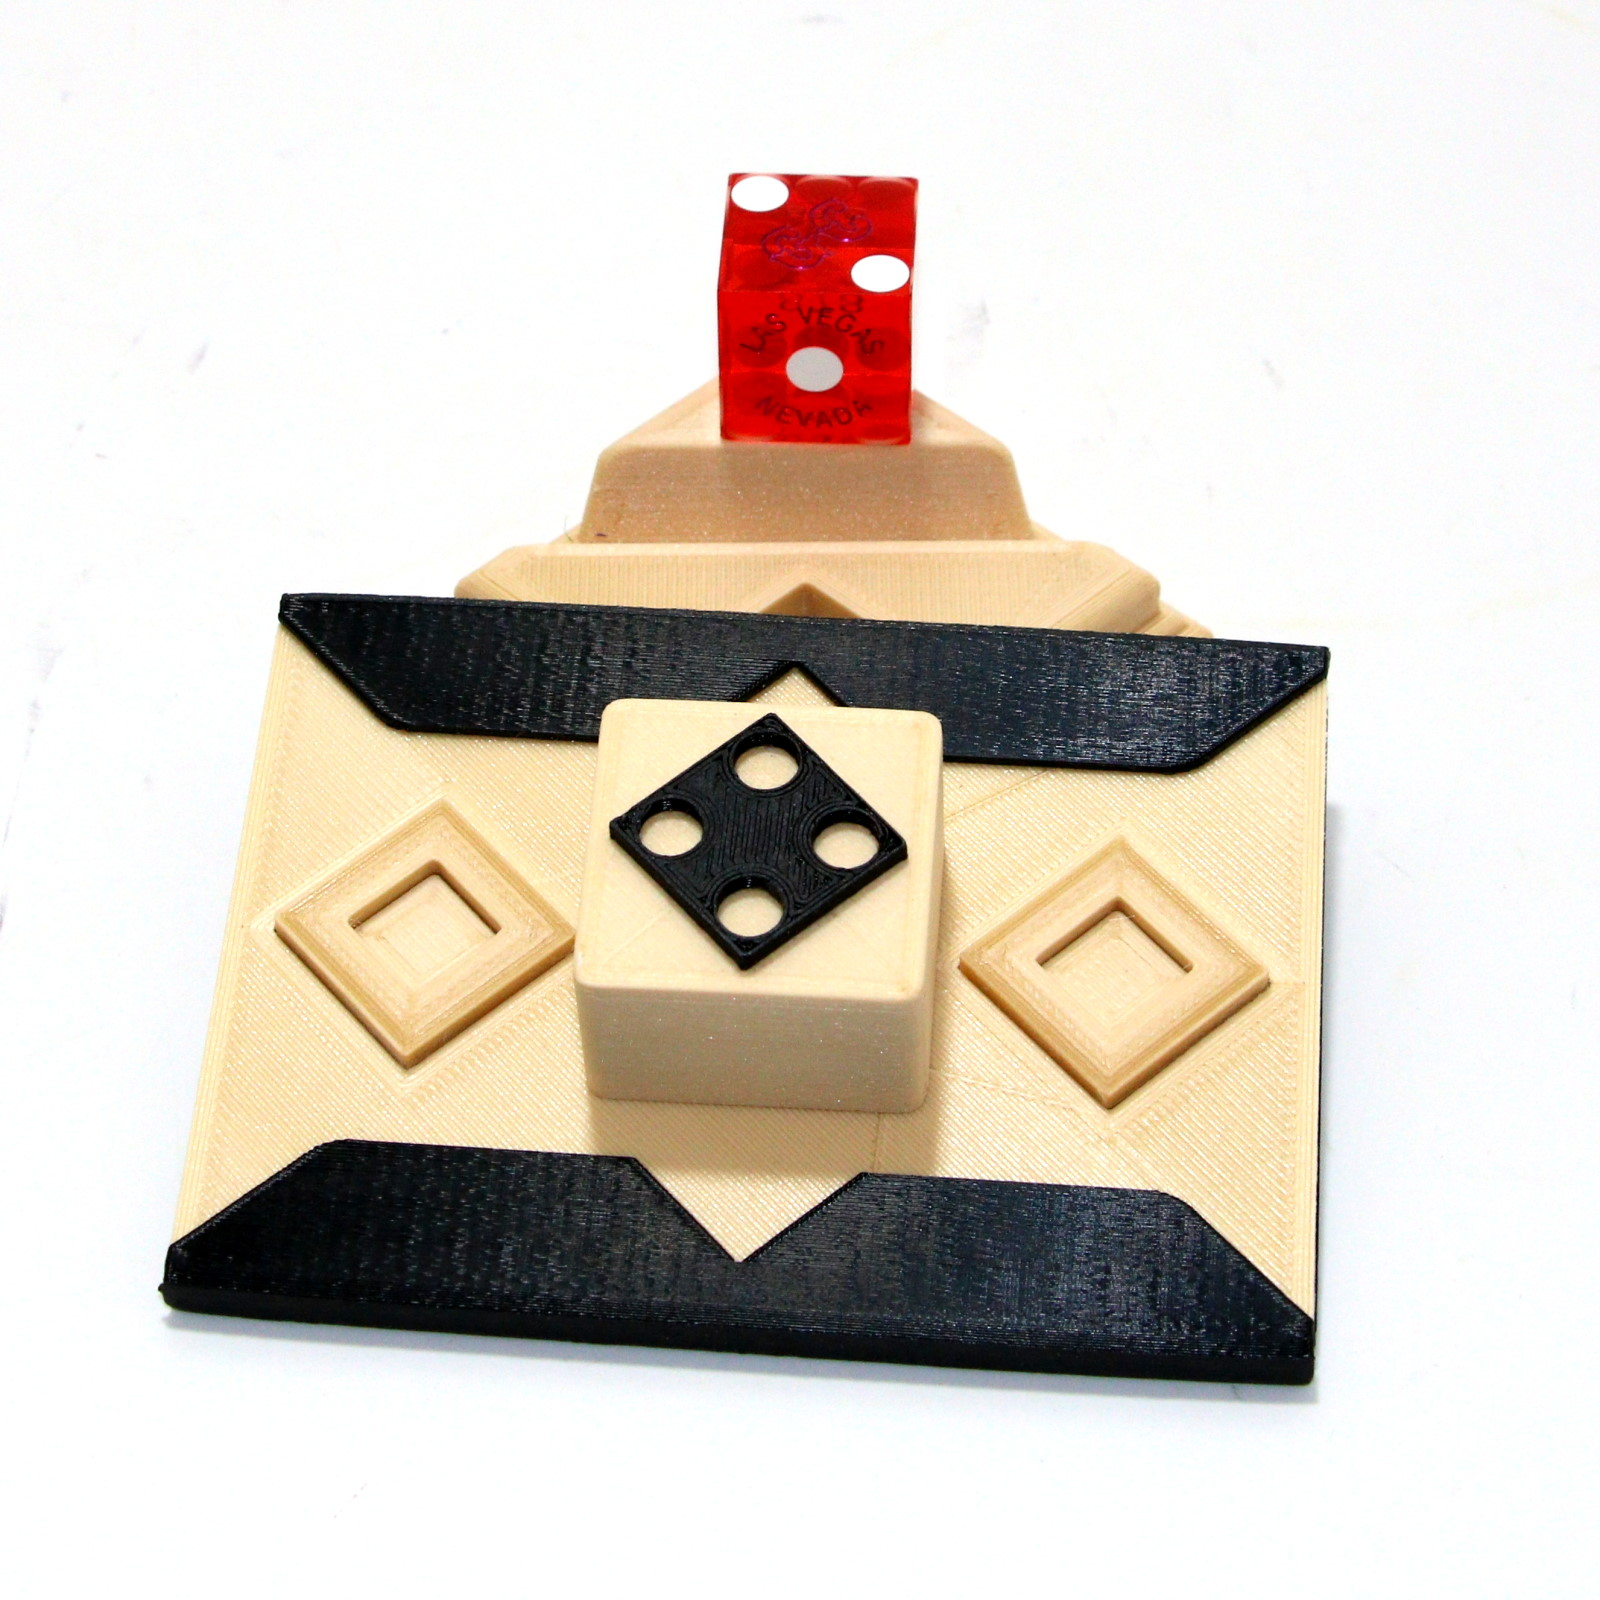 Card Punch (Die) by 3D Magic Works